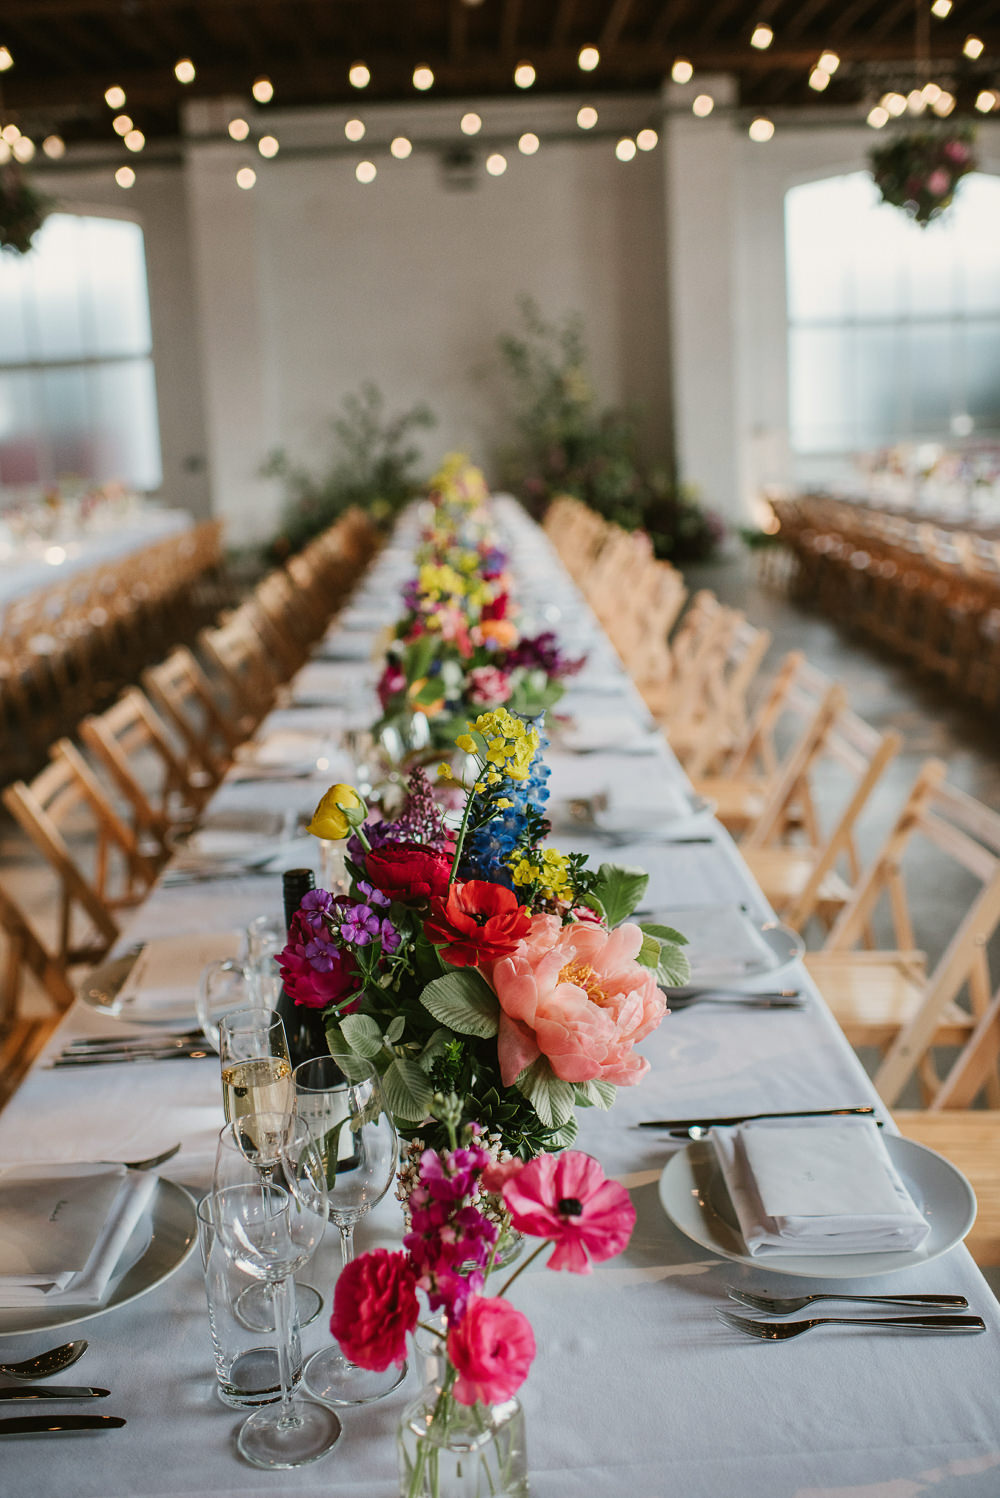 Bottle Flowers Table Decor Centrepiece Spring Coral Peony Natural Wild Colourful Long Table Riverside London Wedding Ellie Gillard Photography